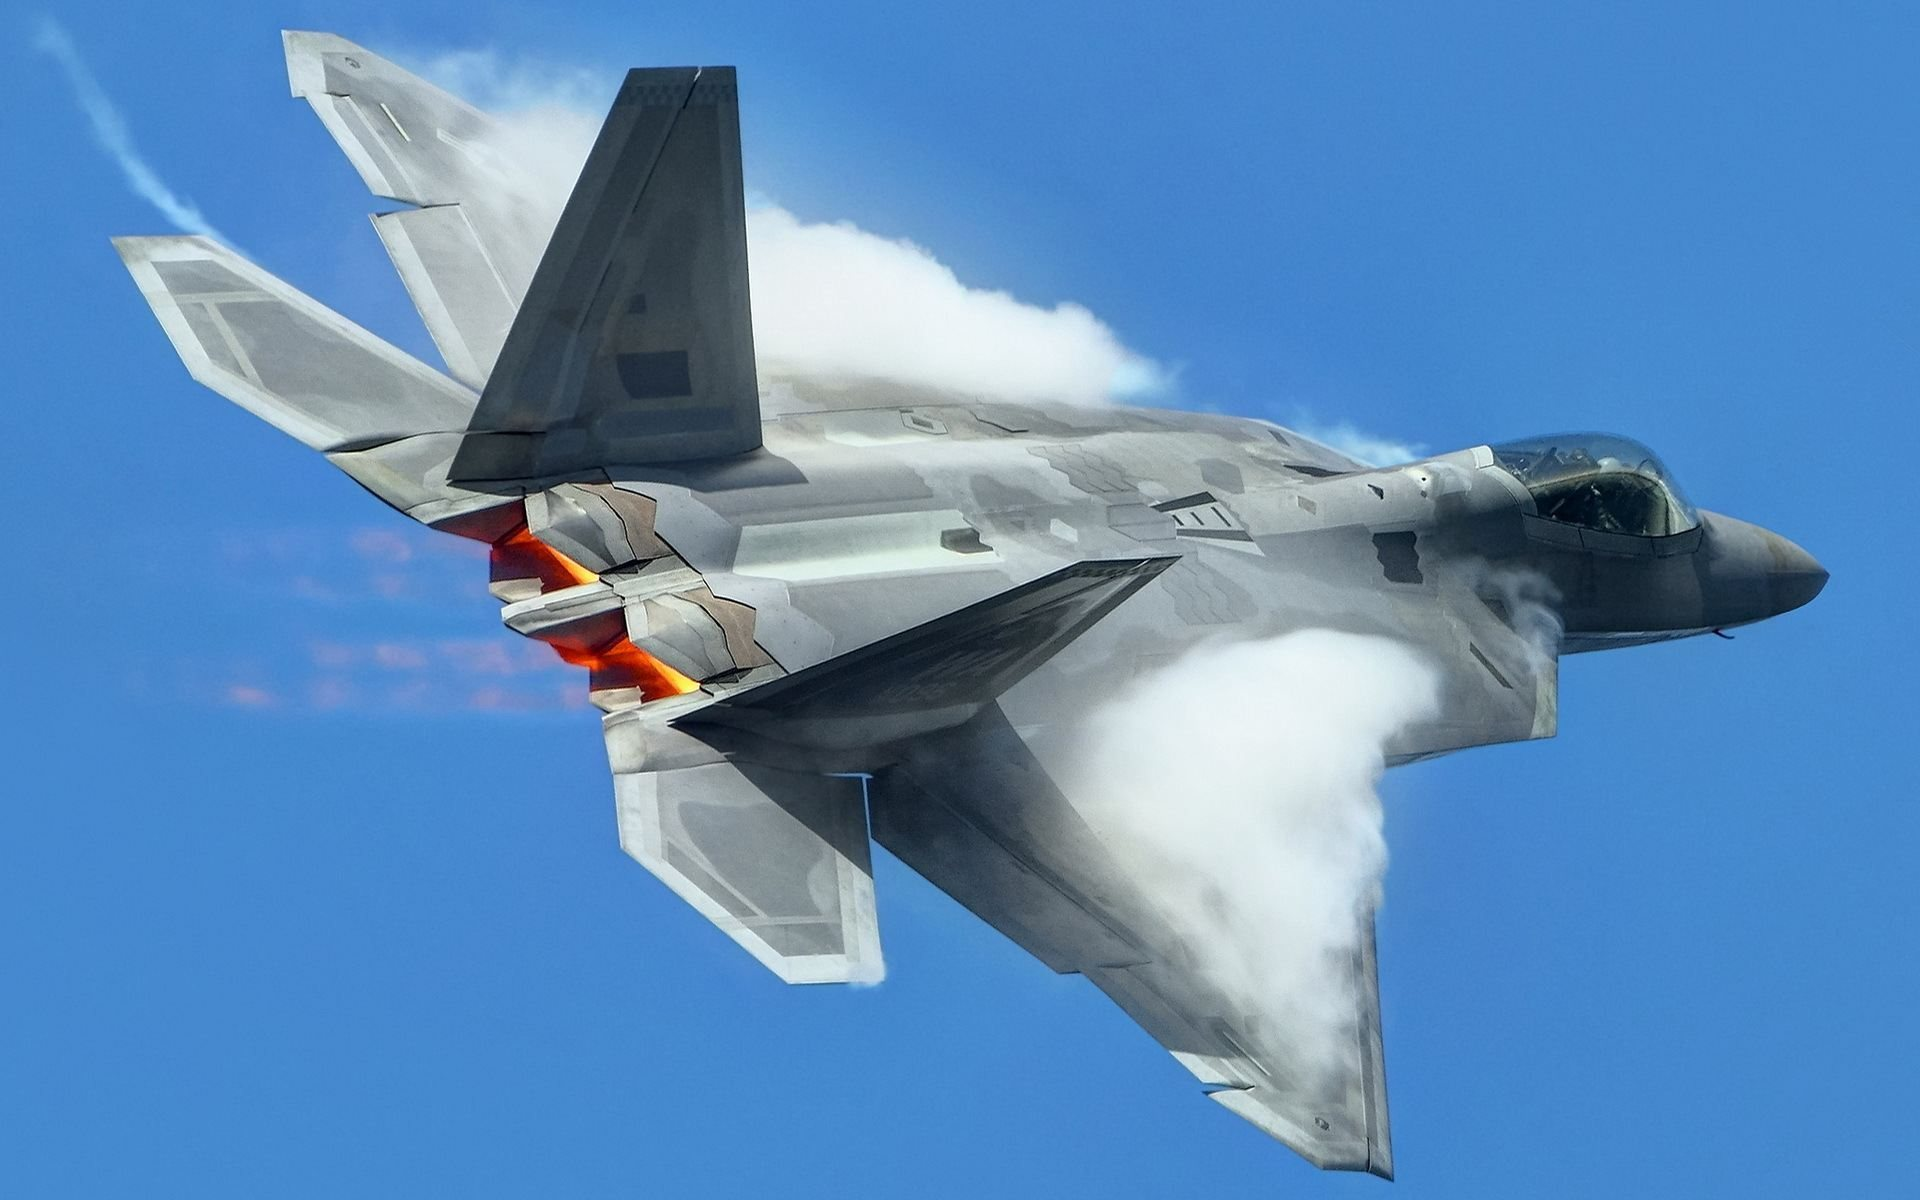 F22 Wallpaper 8443 Hd Wallpapers in Aircraft   Imagescicom 1920x1200